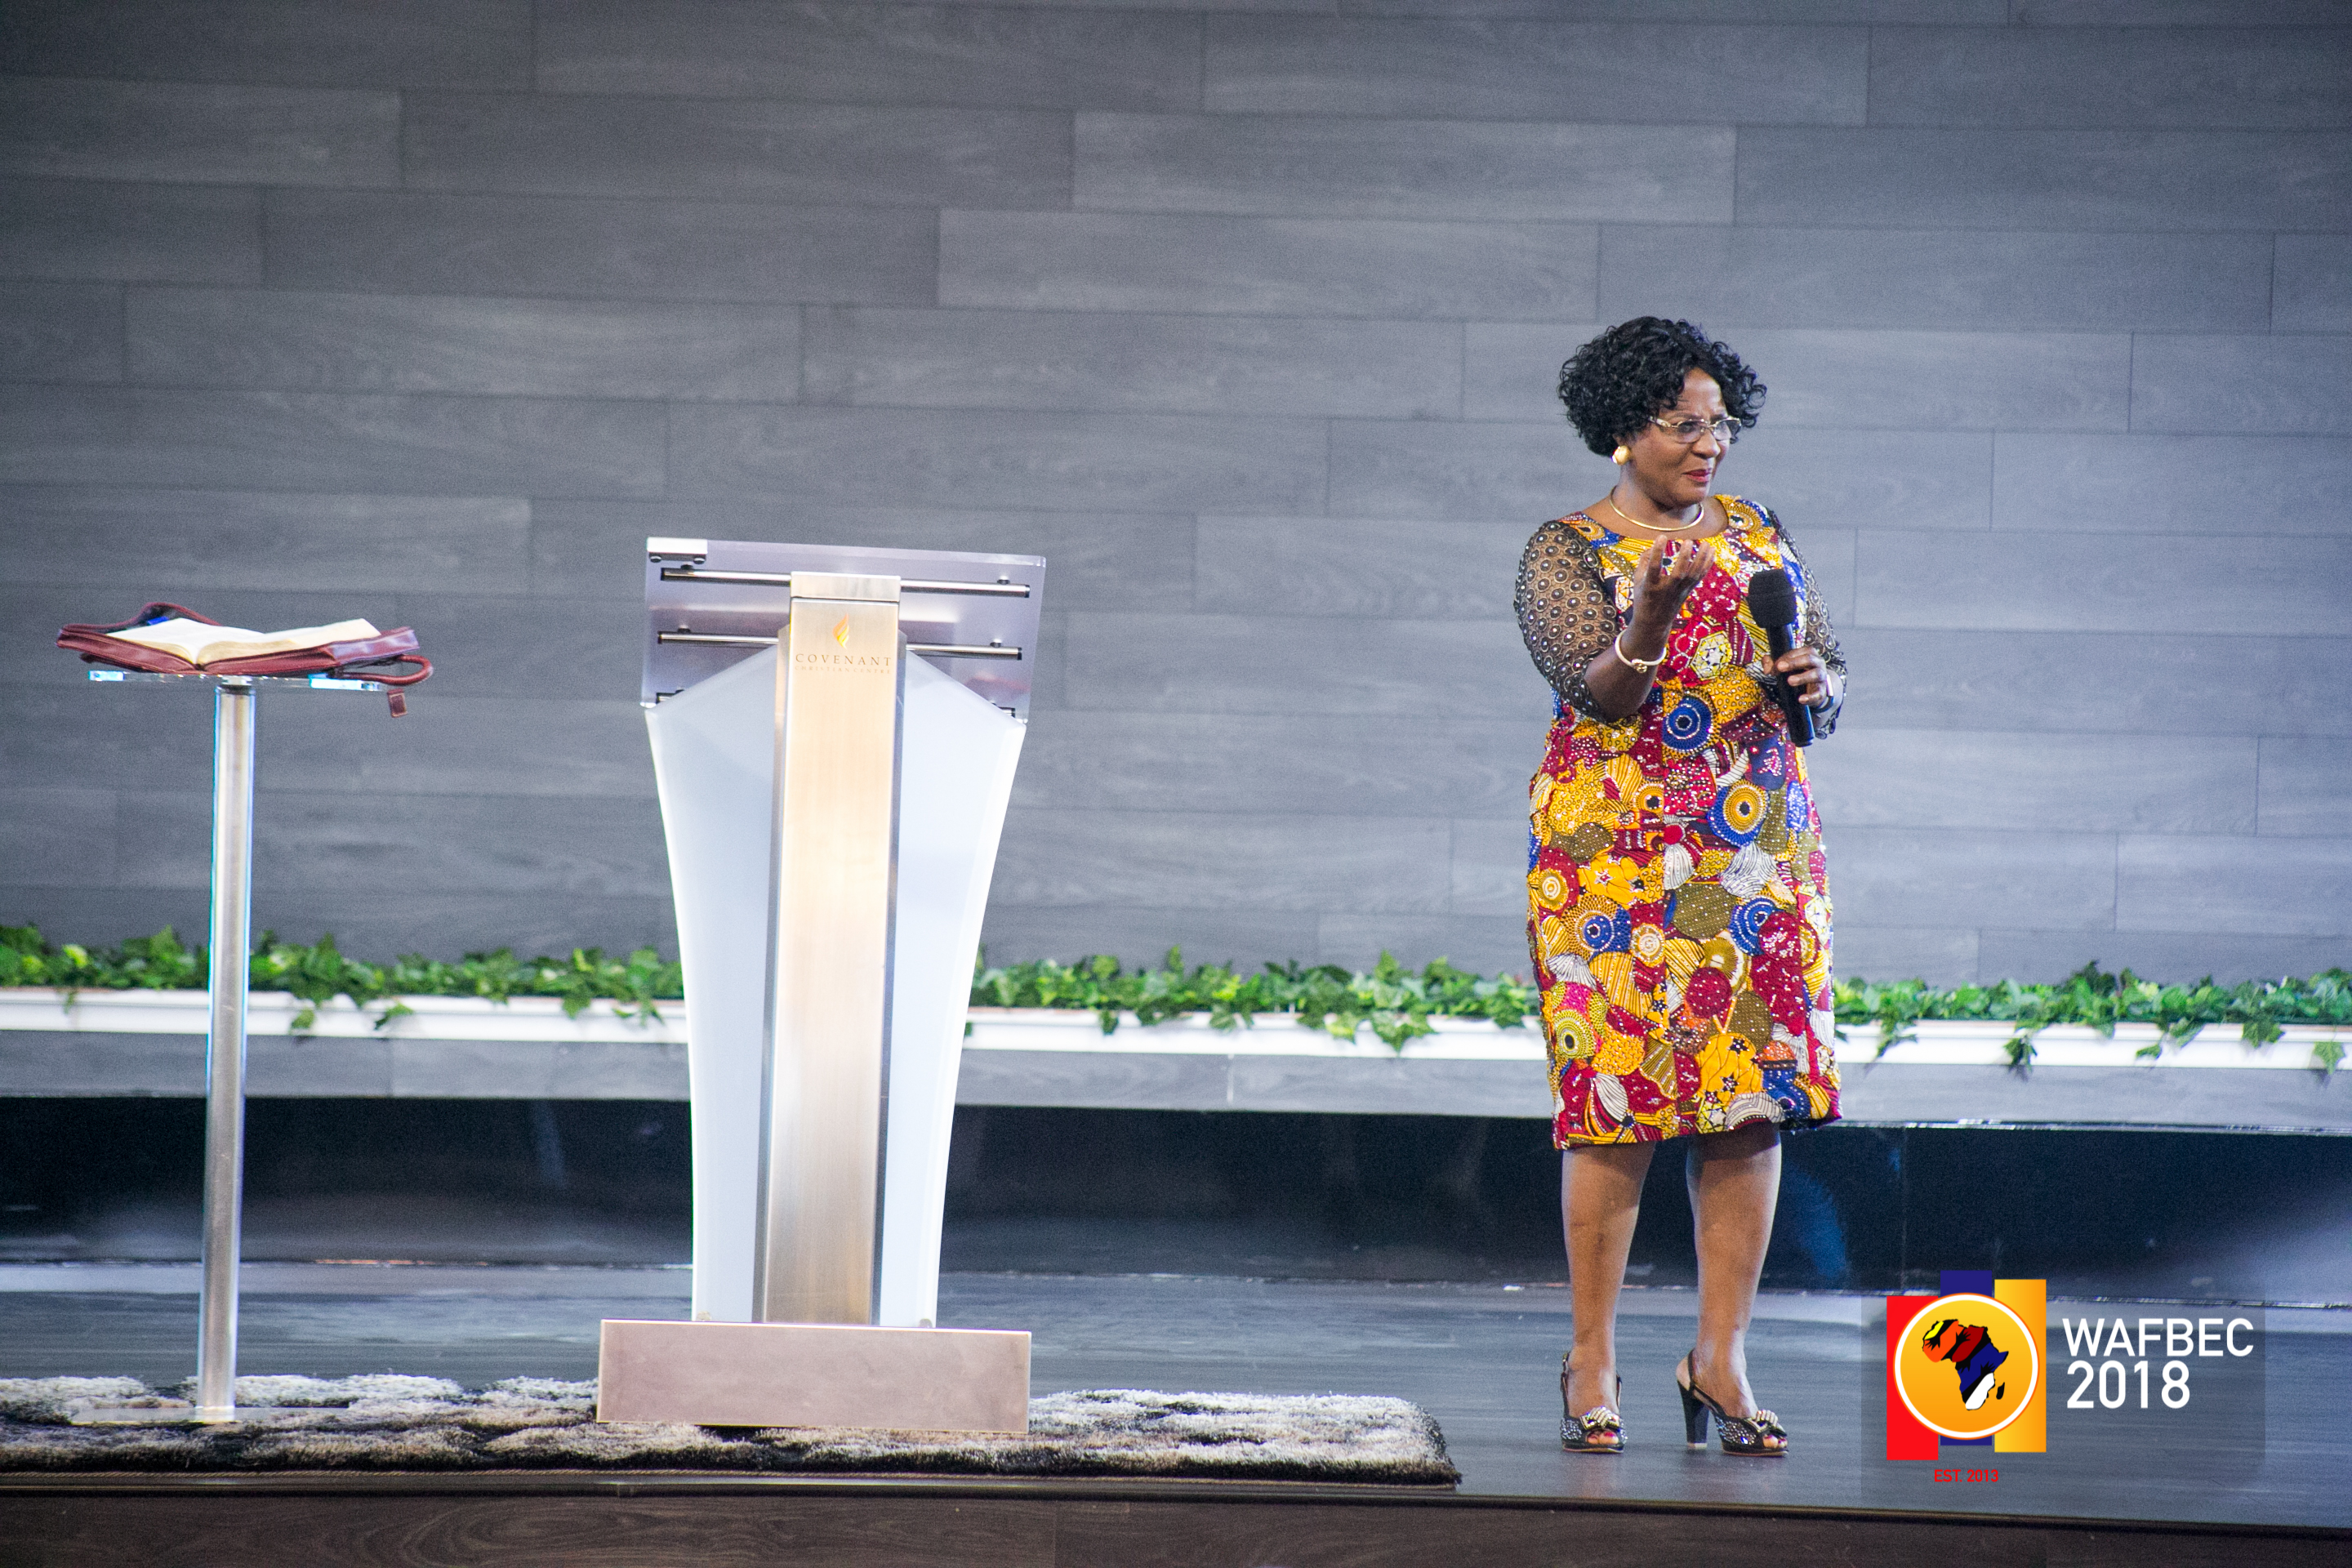 WAFBEC 2018 – Day 8 (Afternoon Session 1) with Pastor Sarah Omakwu